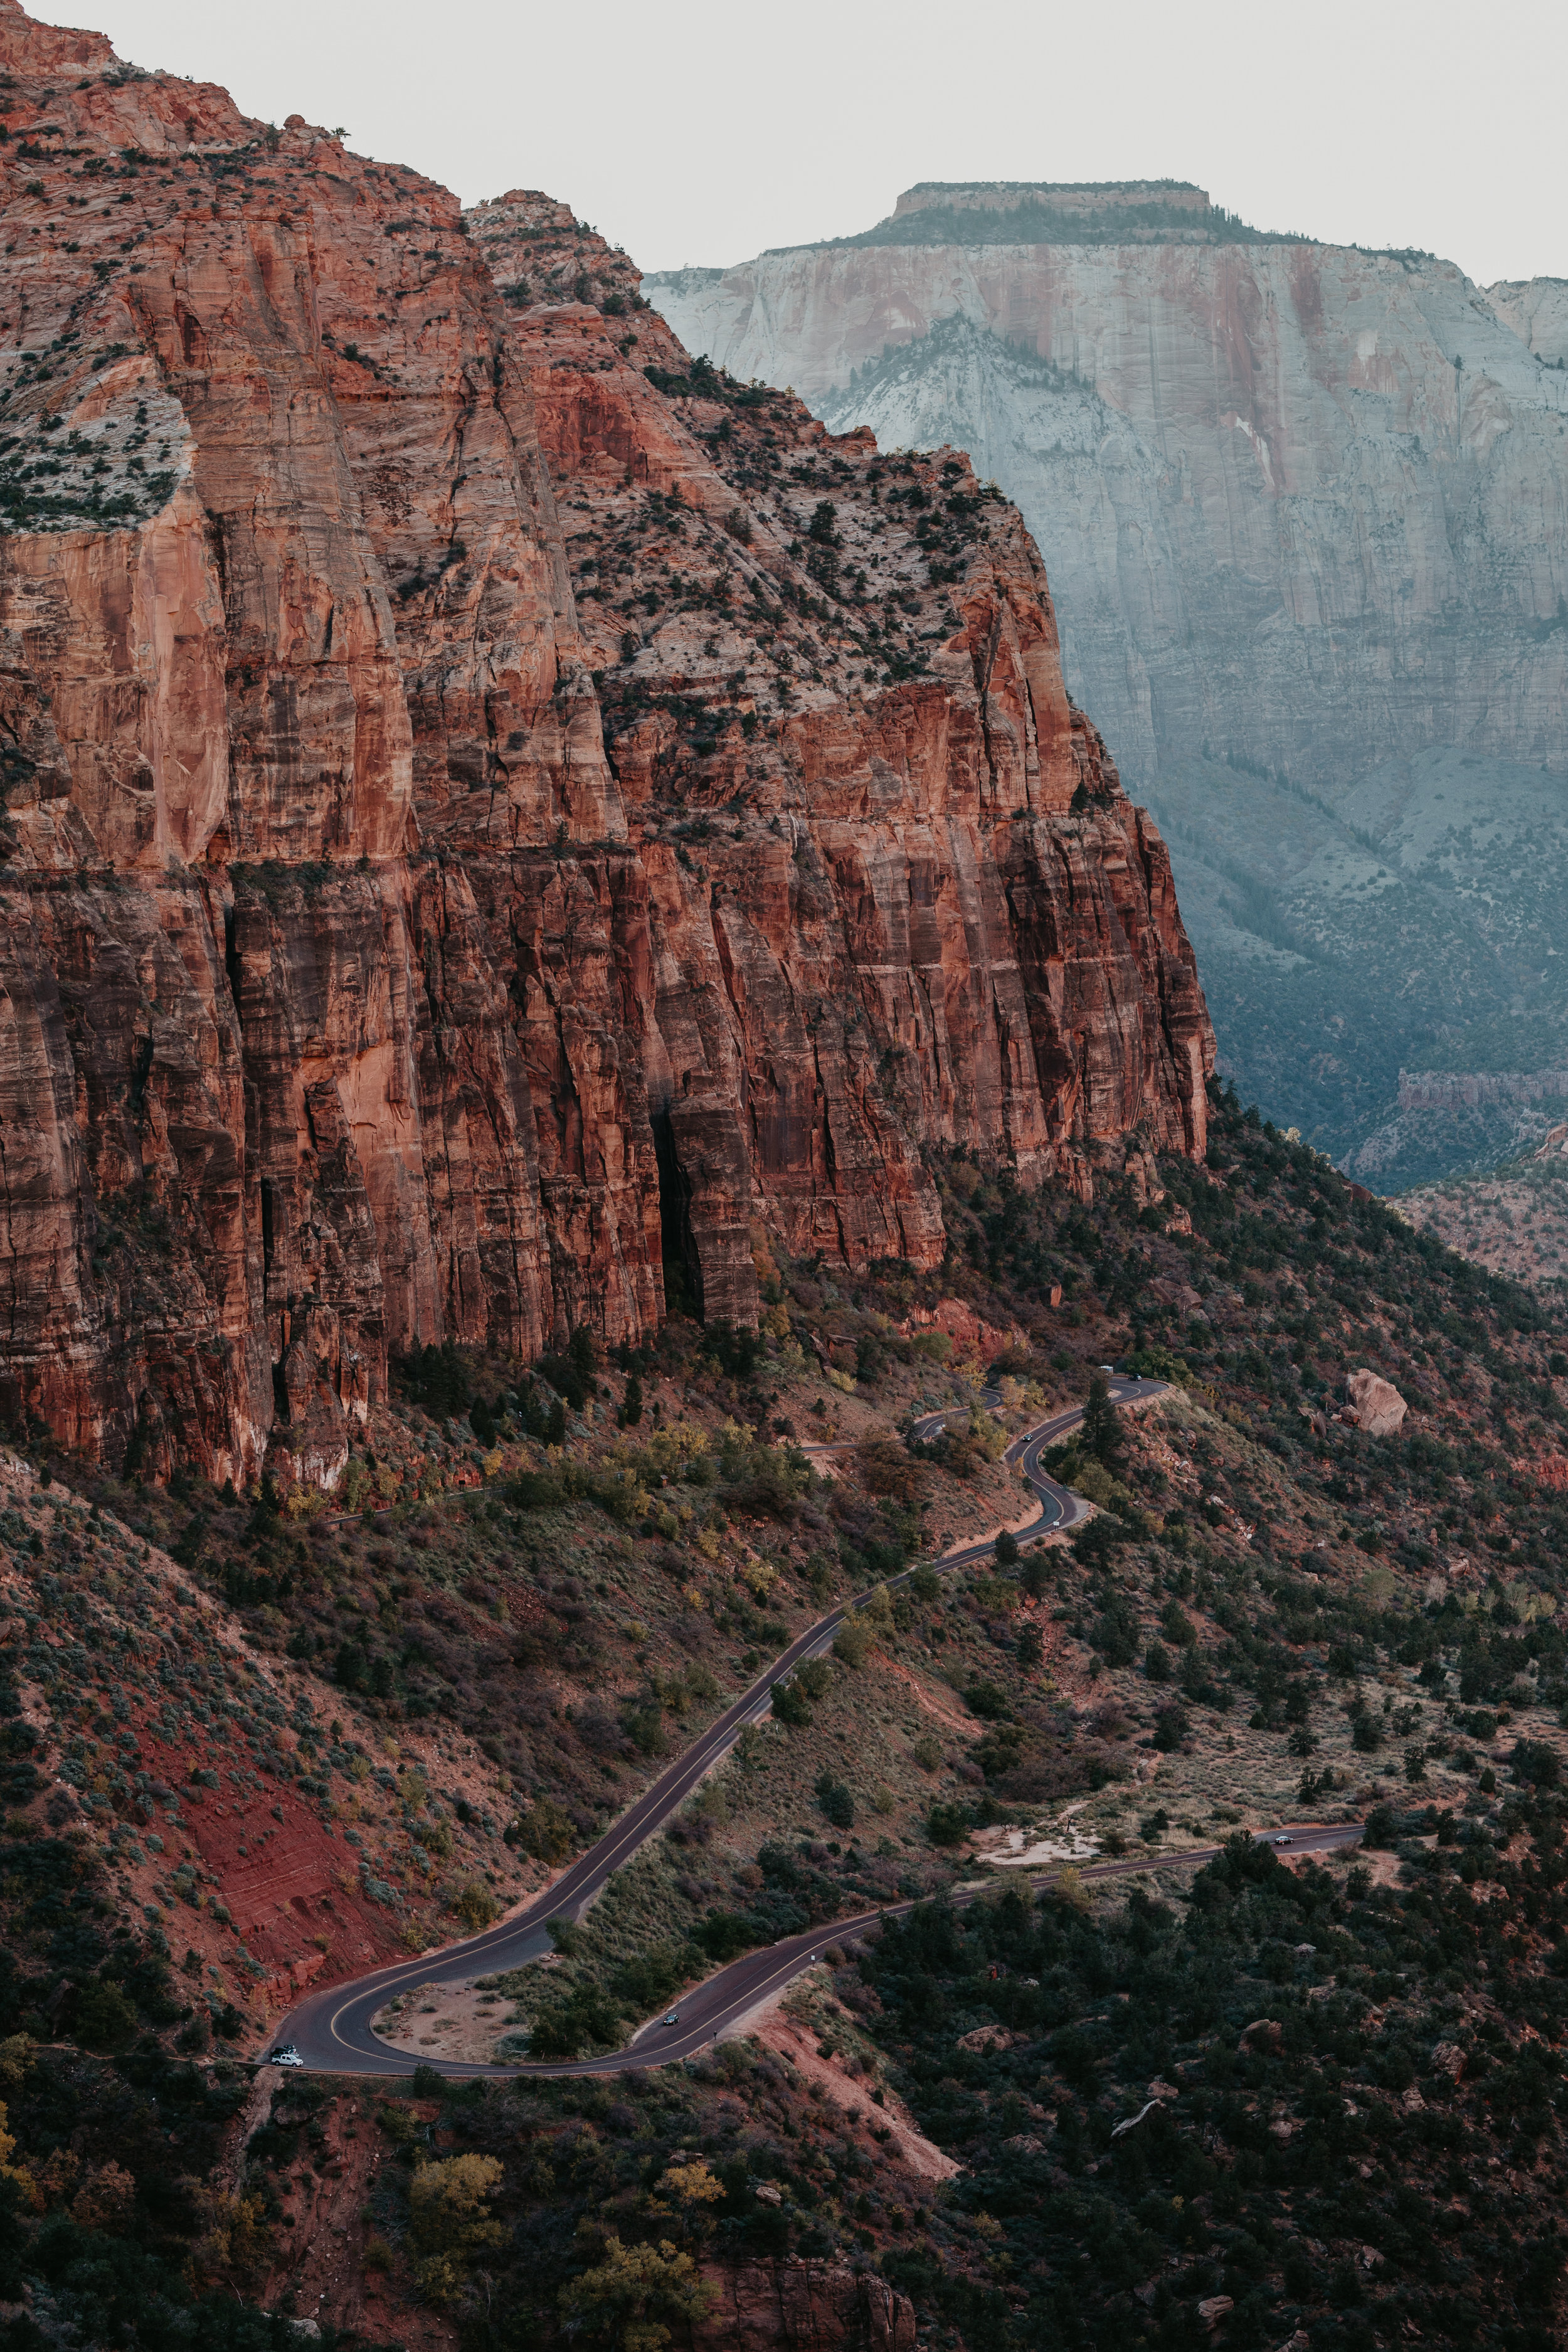 nicole-daacke-photography-zion-national-park-elopement-photographer-canyon-overlook-trail-elope-hiking-adventure-wedding-photos-fall-utah-red-rock-canyon-stgeorge-eloping-photographer-57.jpg